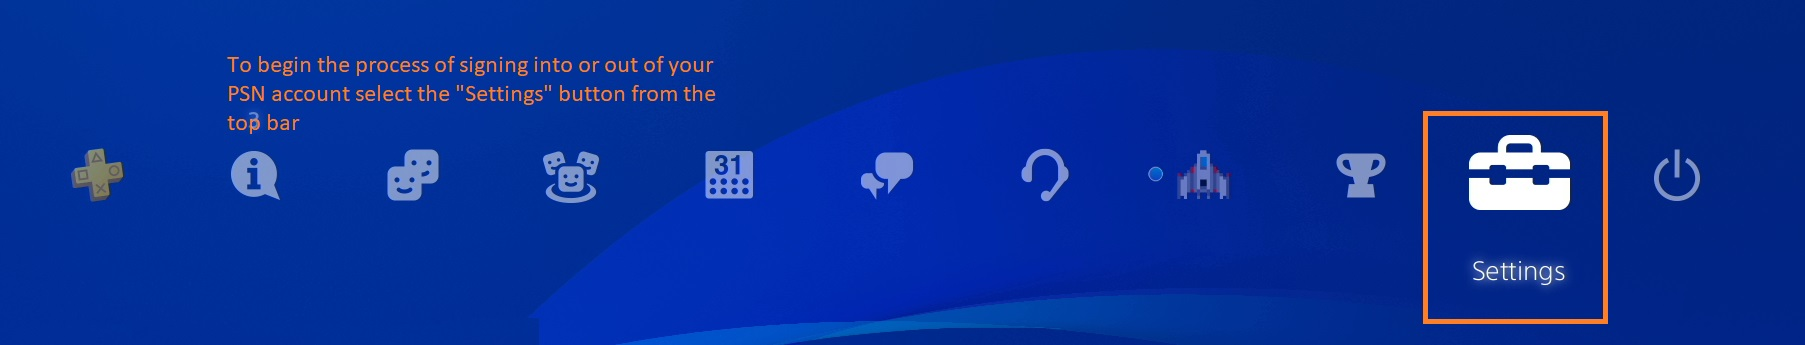 """Blue PSN home menu. """"Settings"""" is a white tool box icon on the far right, to the left of the power icon (circle with a line)."""